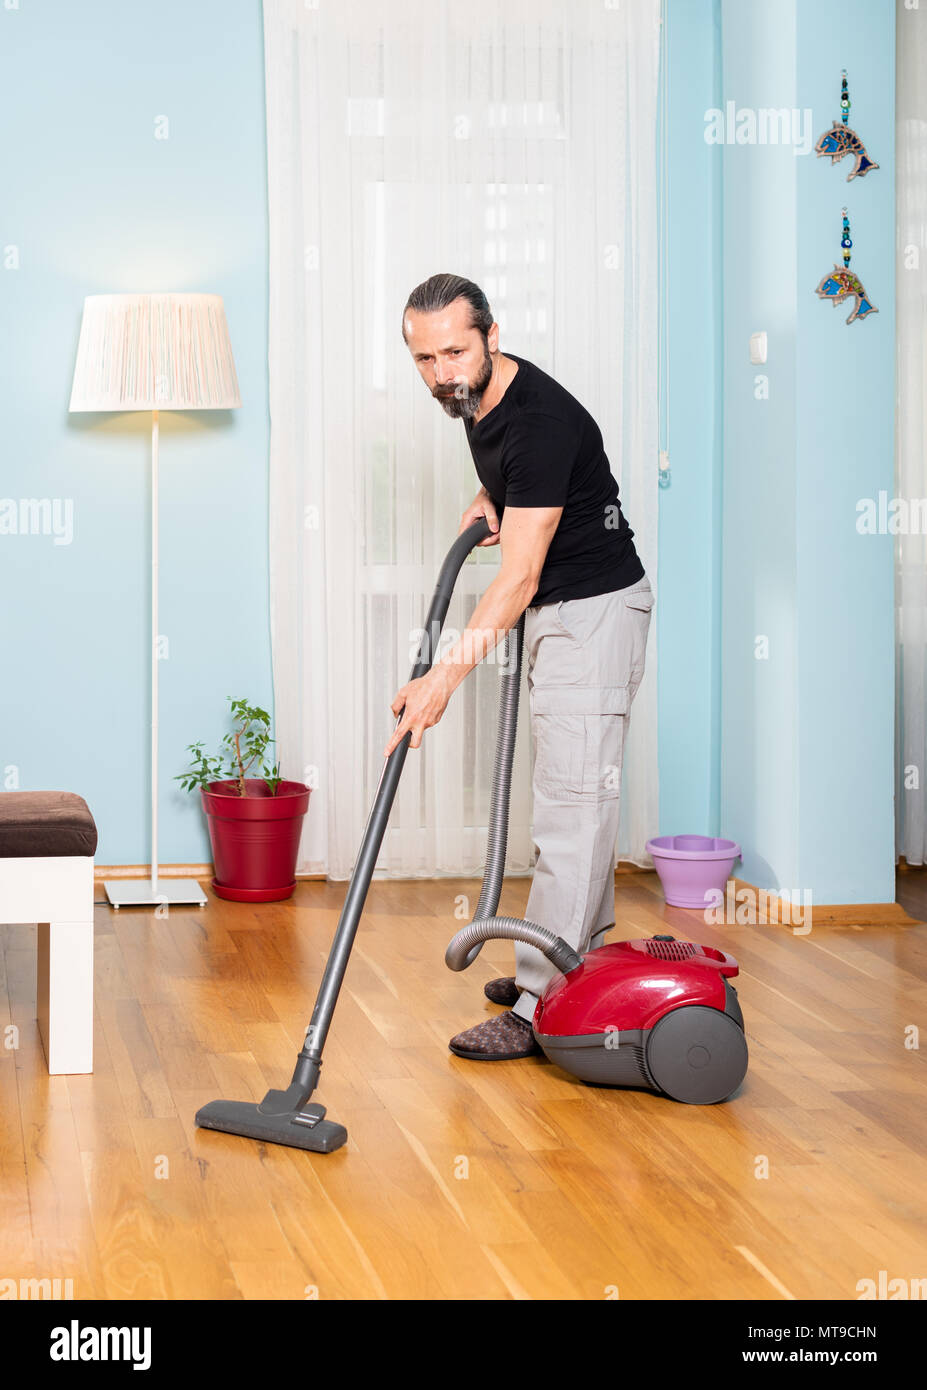 House sweeping man, sweeping wood work with broom machine - Stock Image